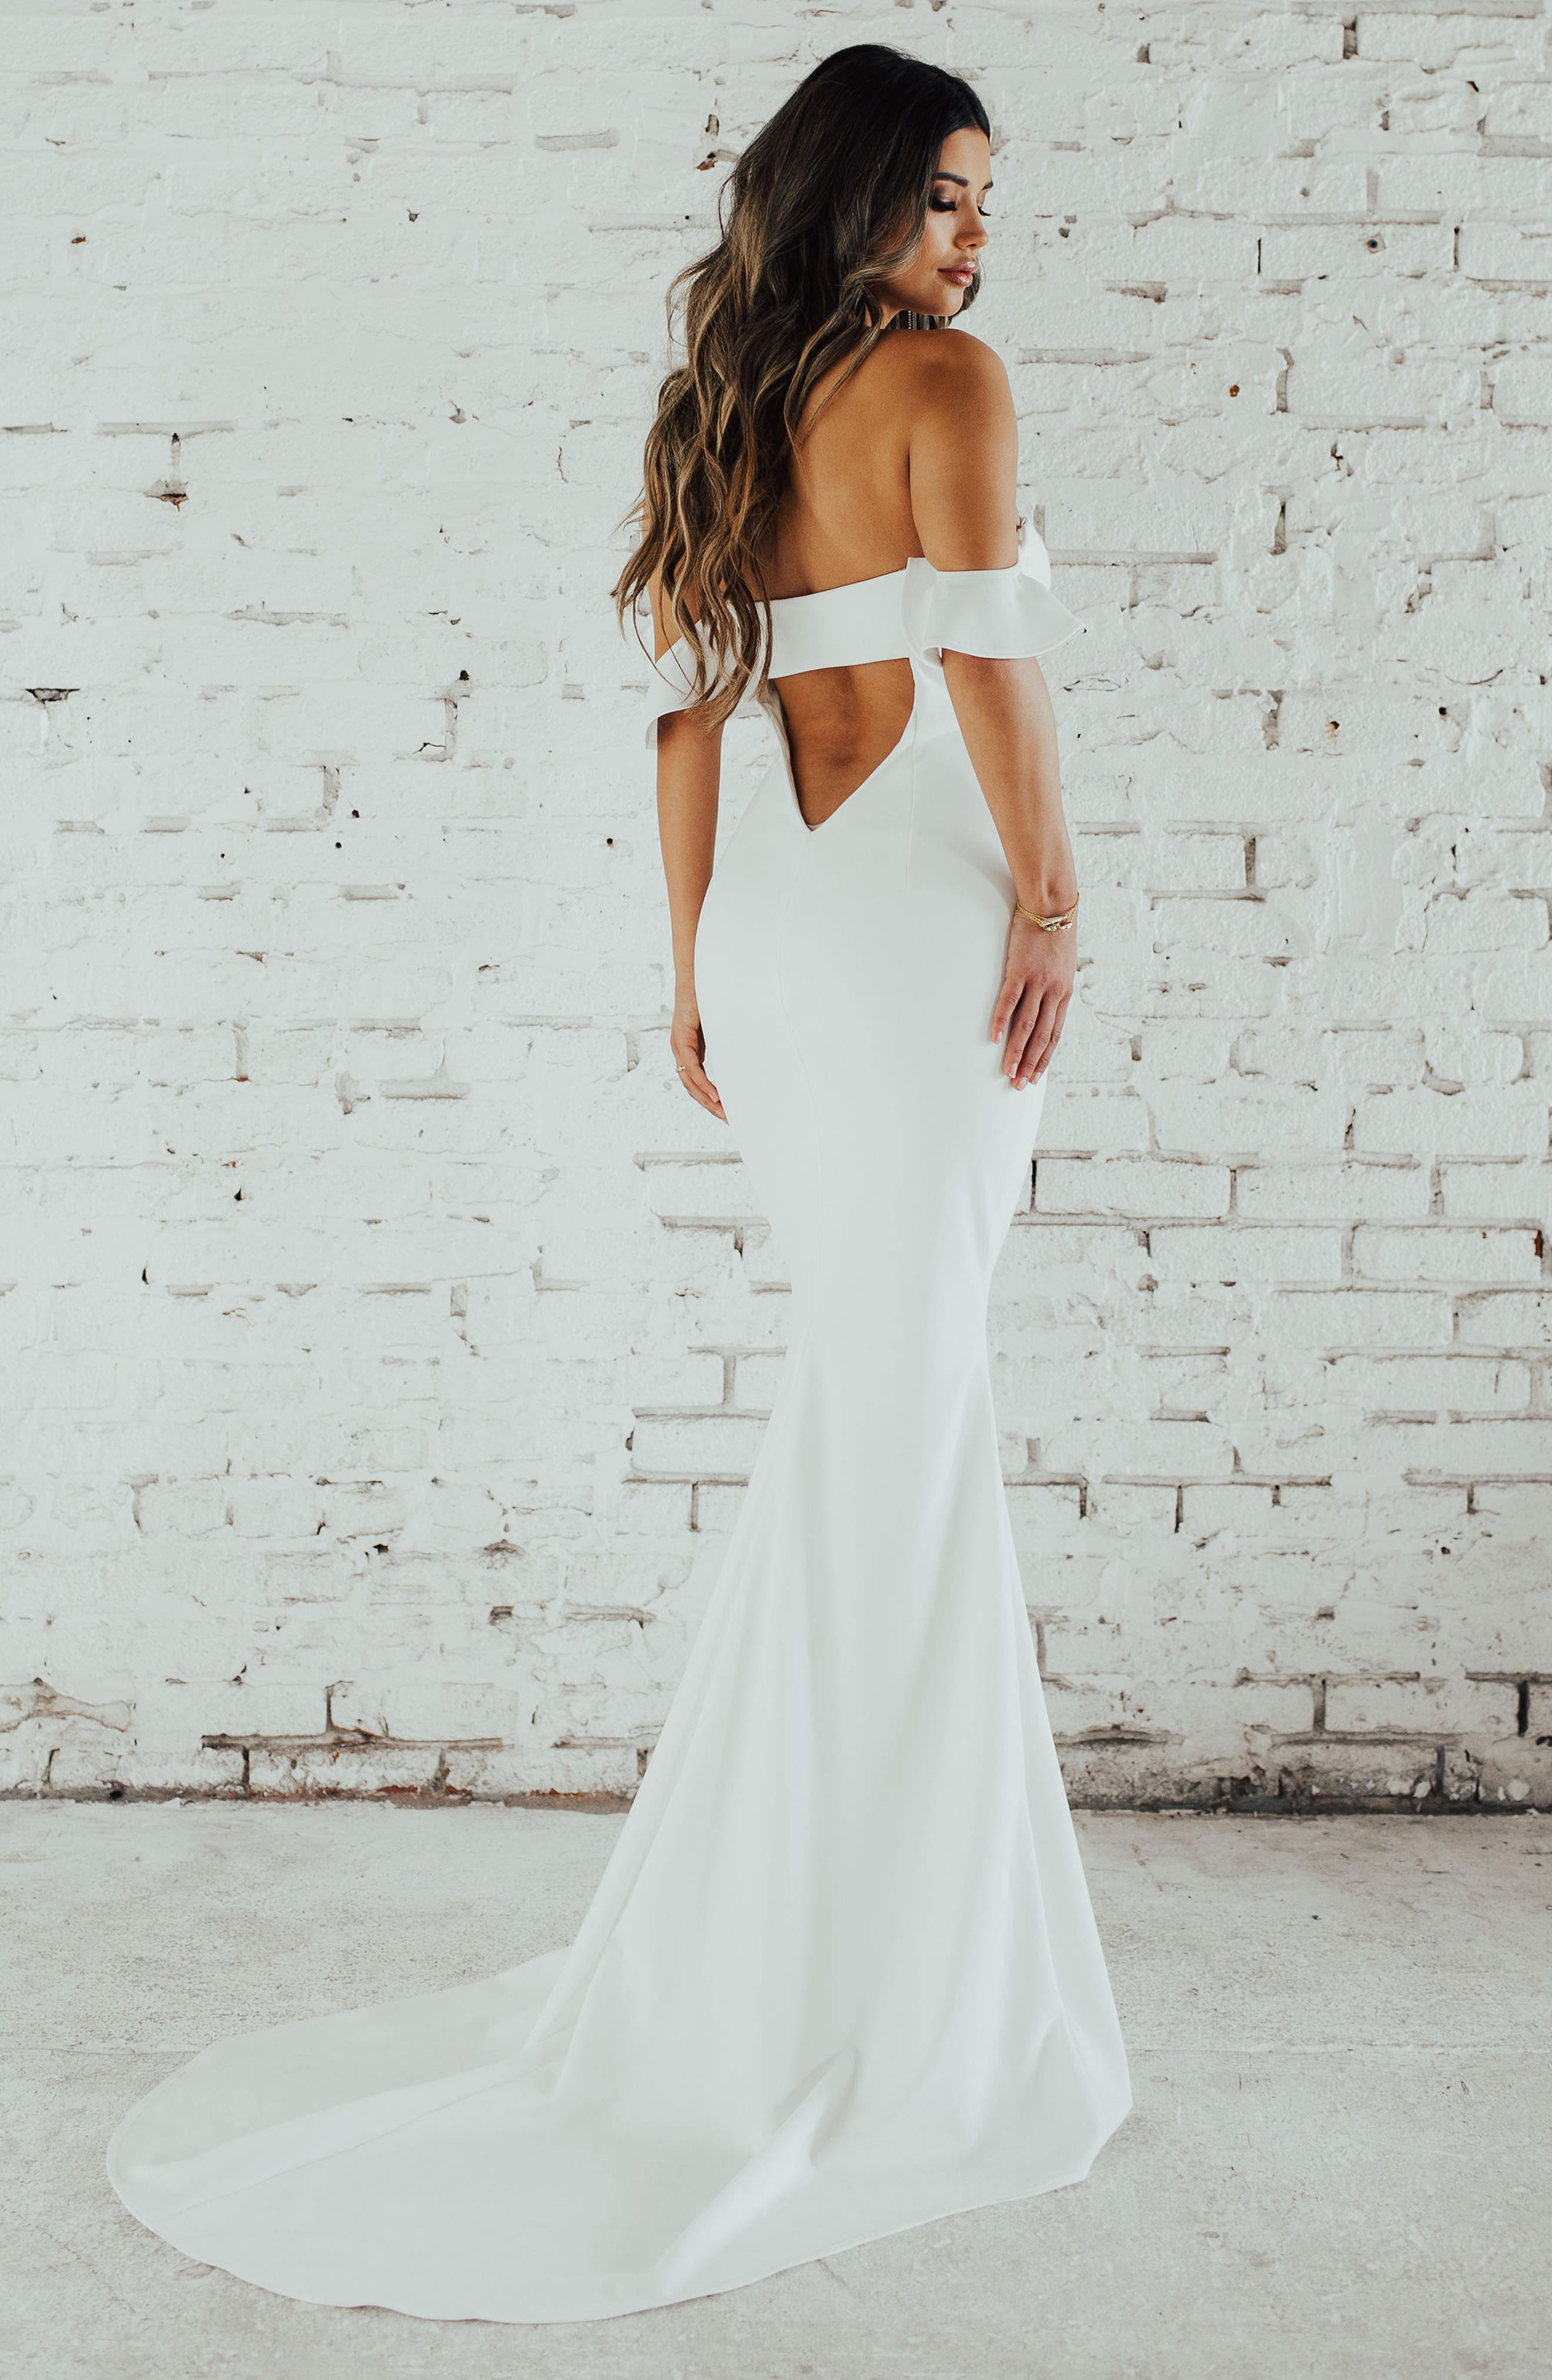 w.off the shoulder wedding dresses